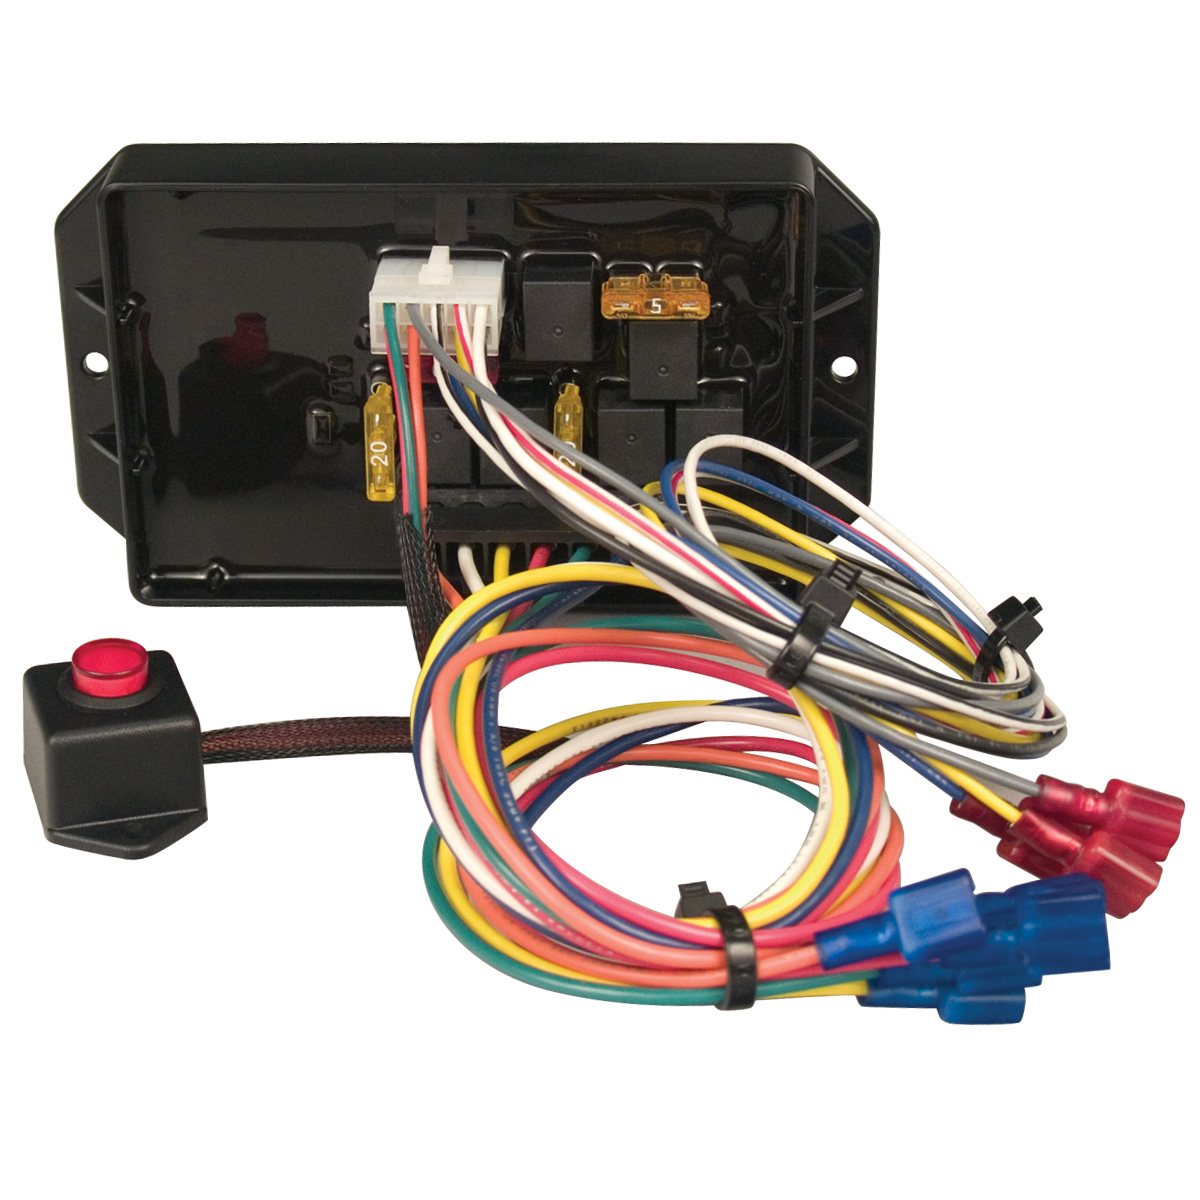 Ignition Security System Product Image